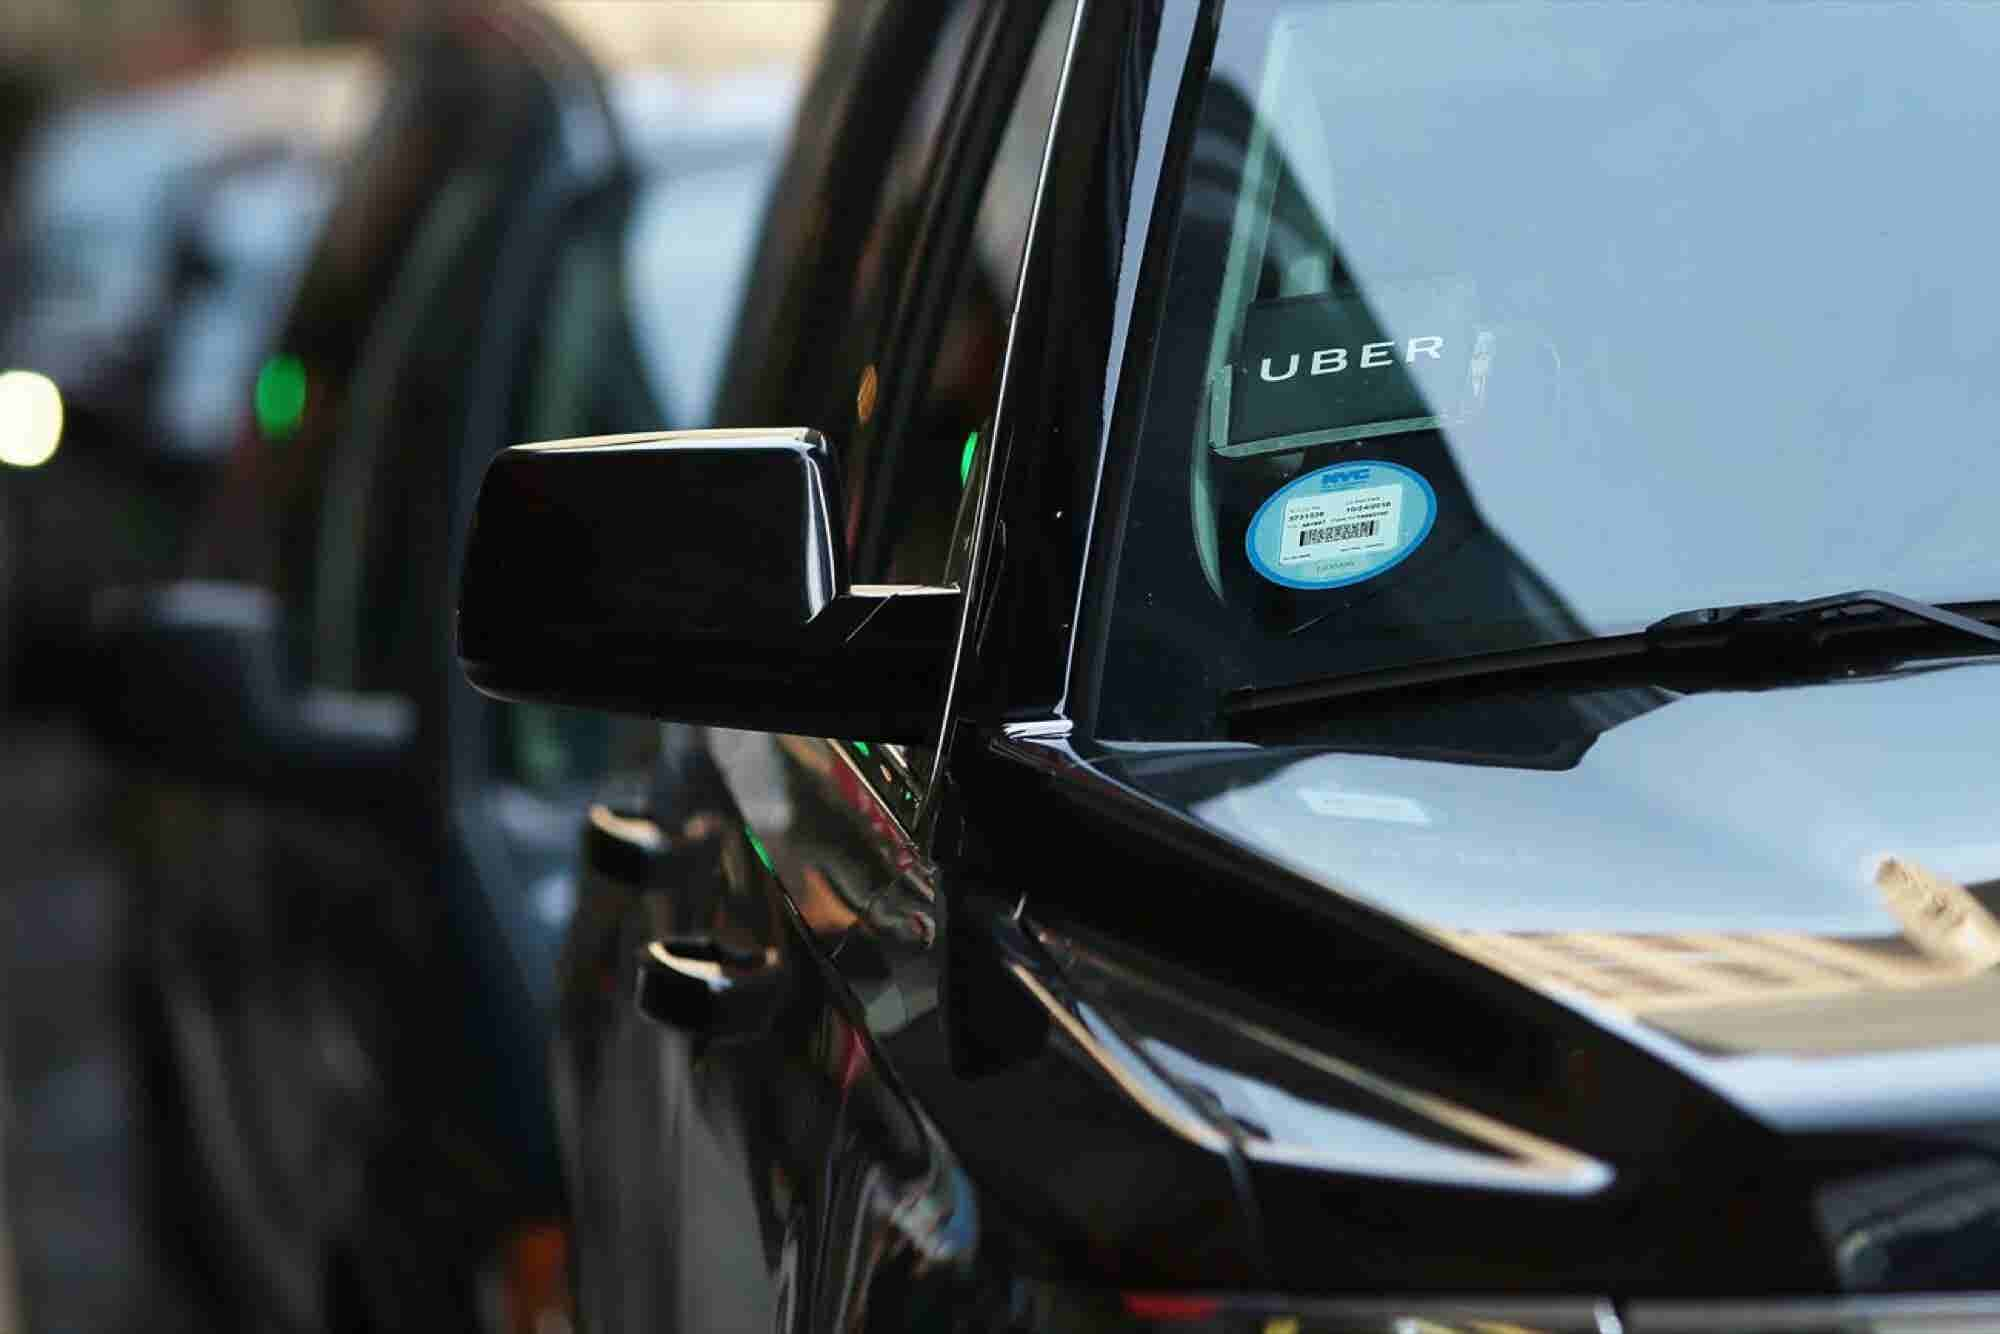 How Low Can Uber Go? Here Are 3 Recent Revelations That Continue to Tarnish the Brand.